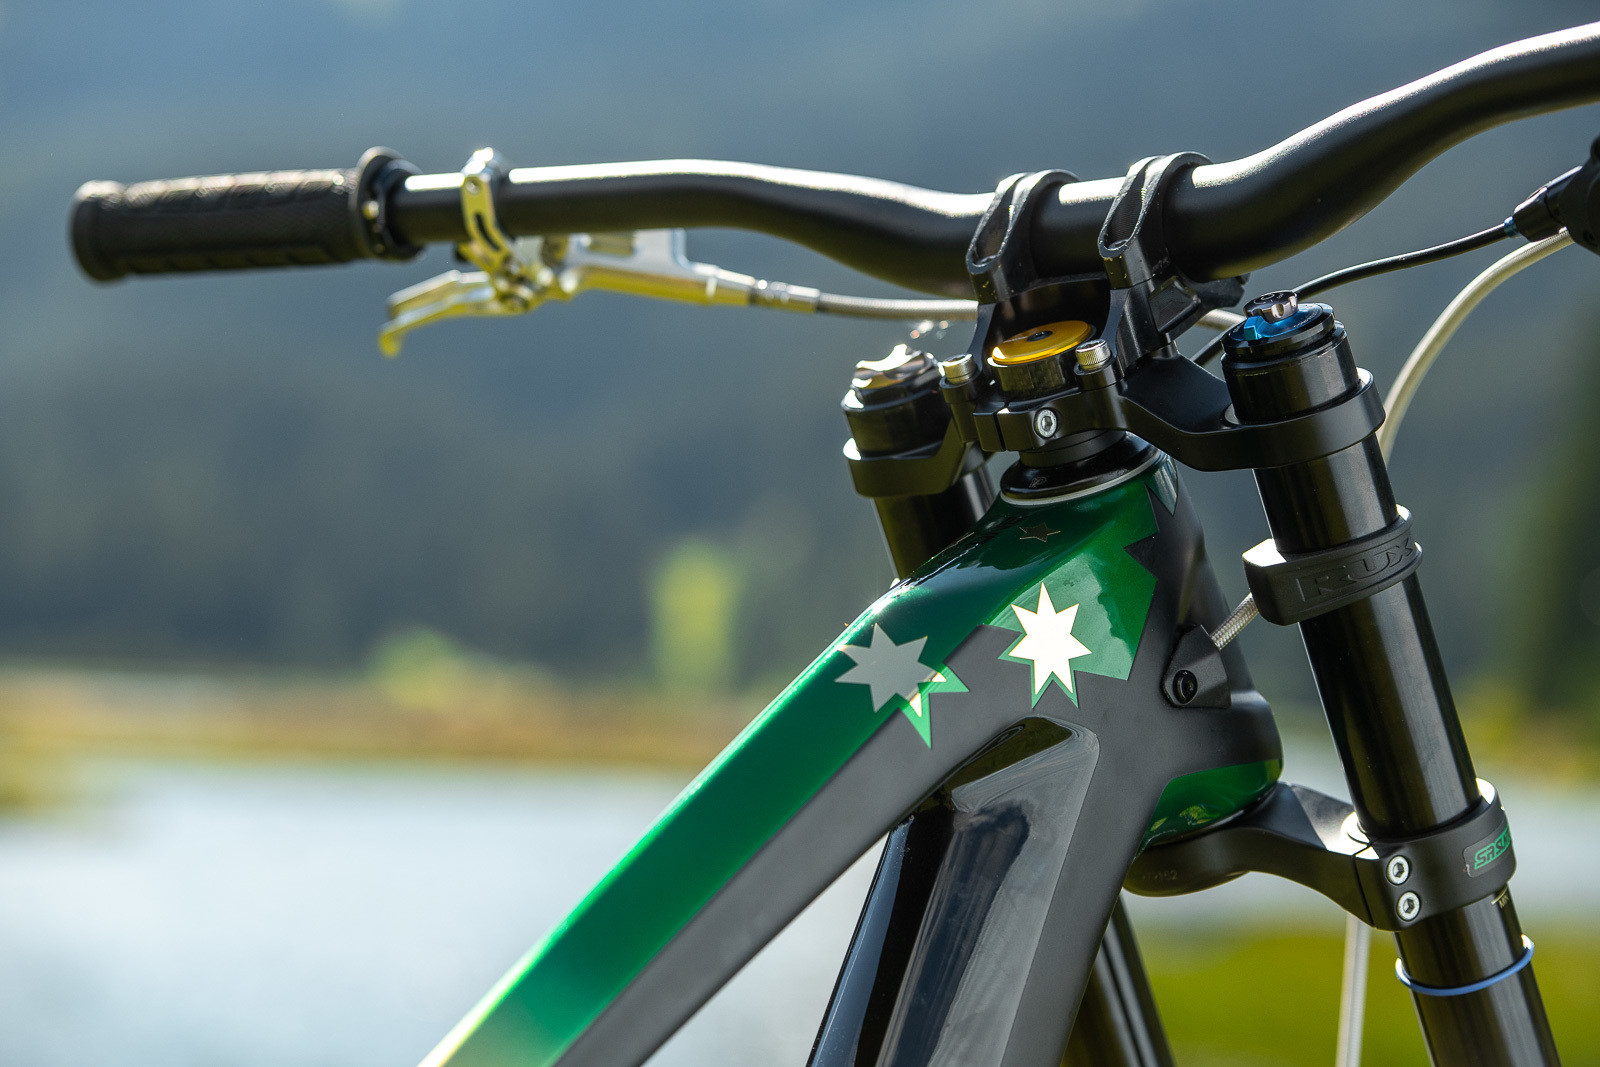 Looking Fresh - WORLD CHAMPS BIKES - Mick & Tracey Hannah's Polygons - Mountain Biking Pictures - Vital MTB